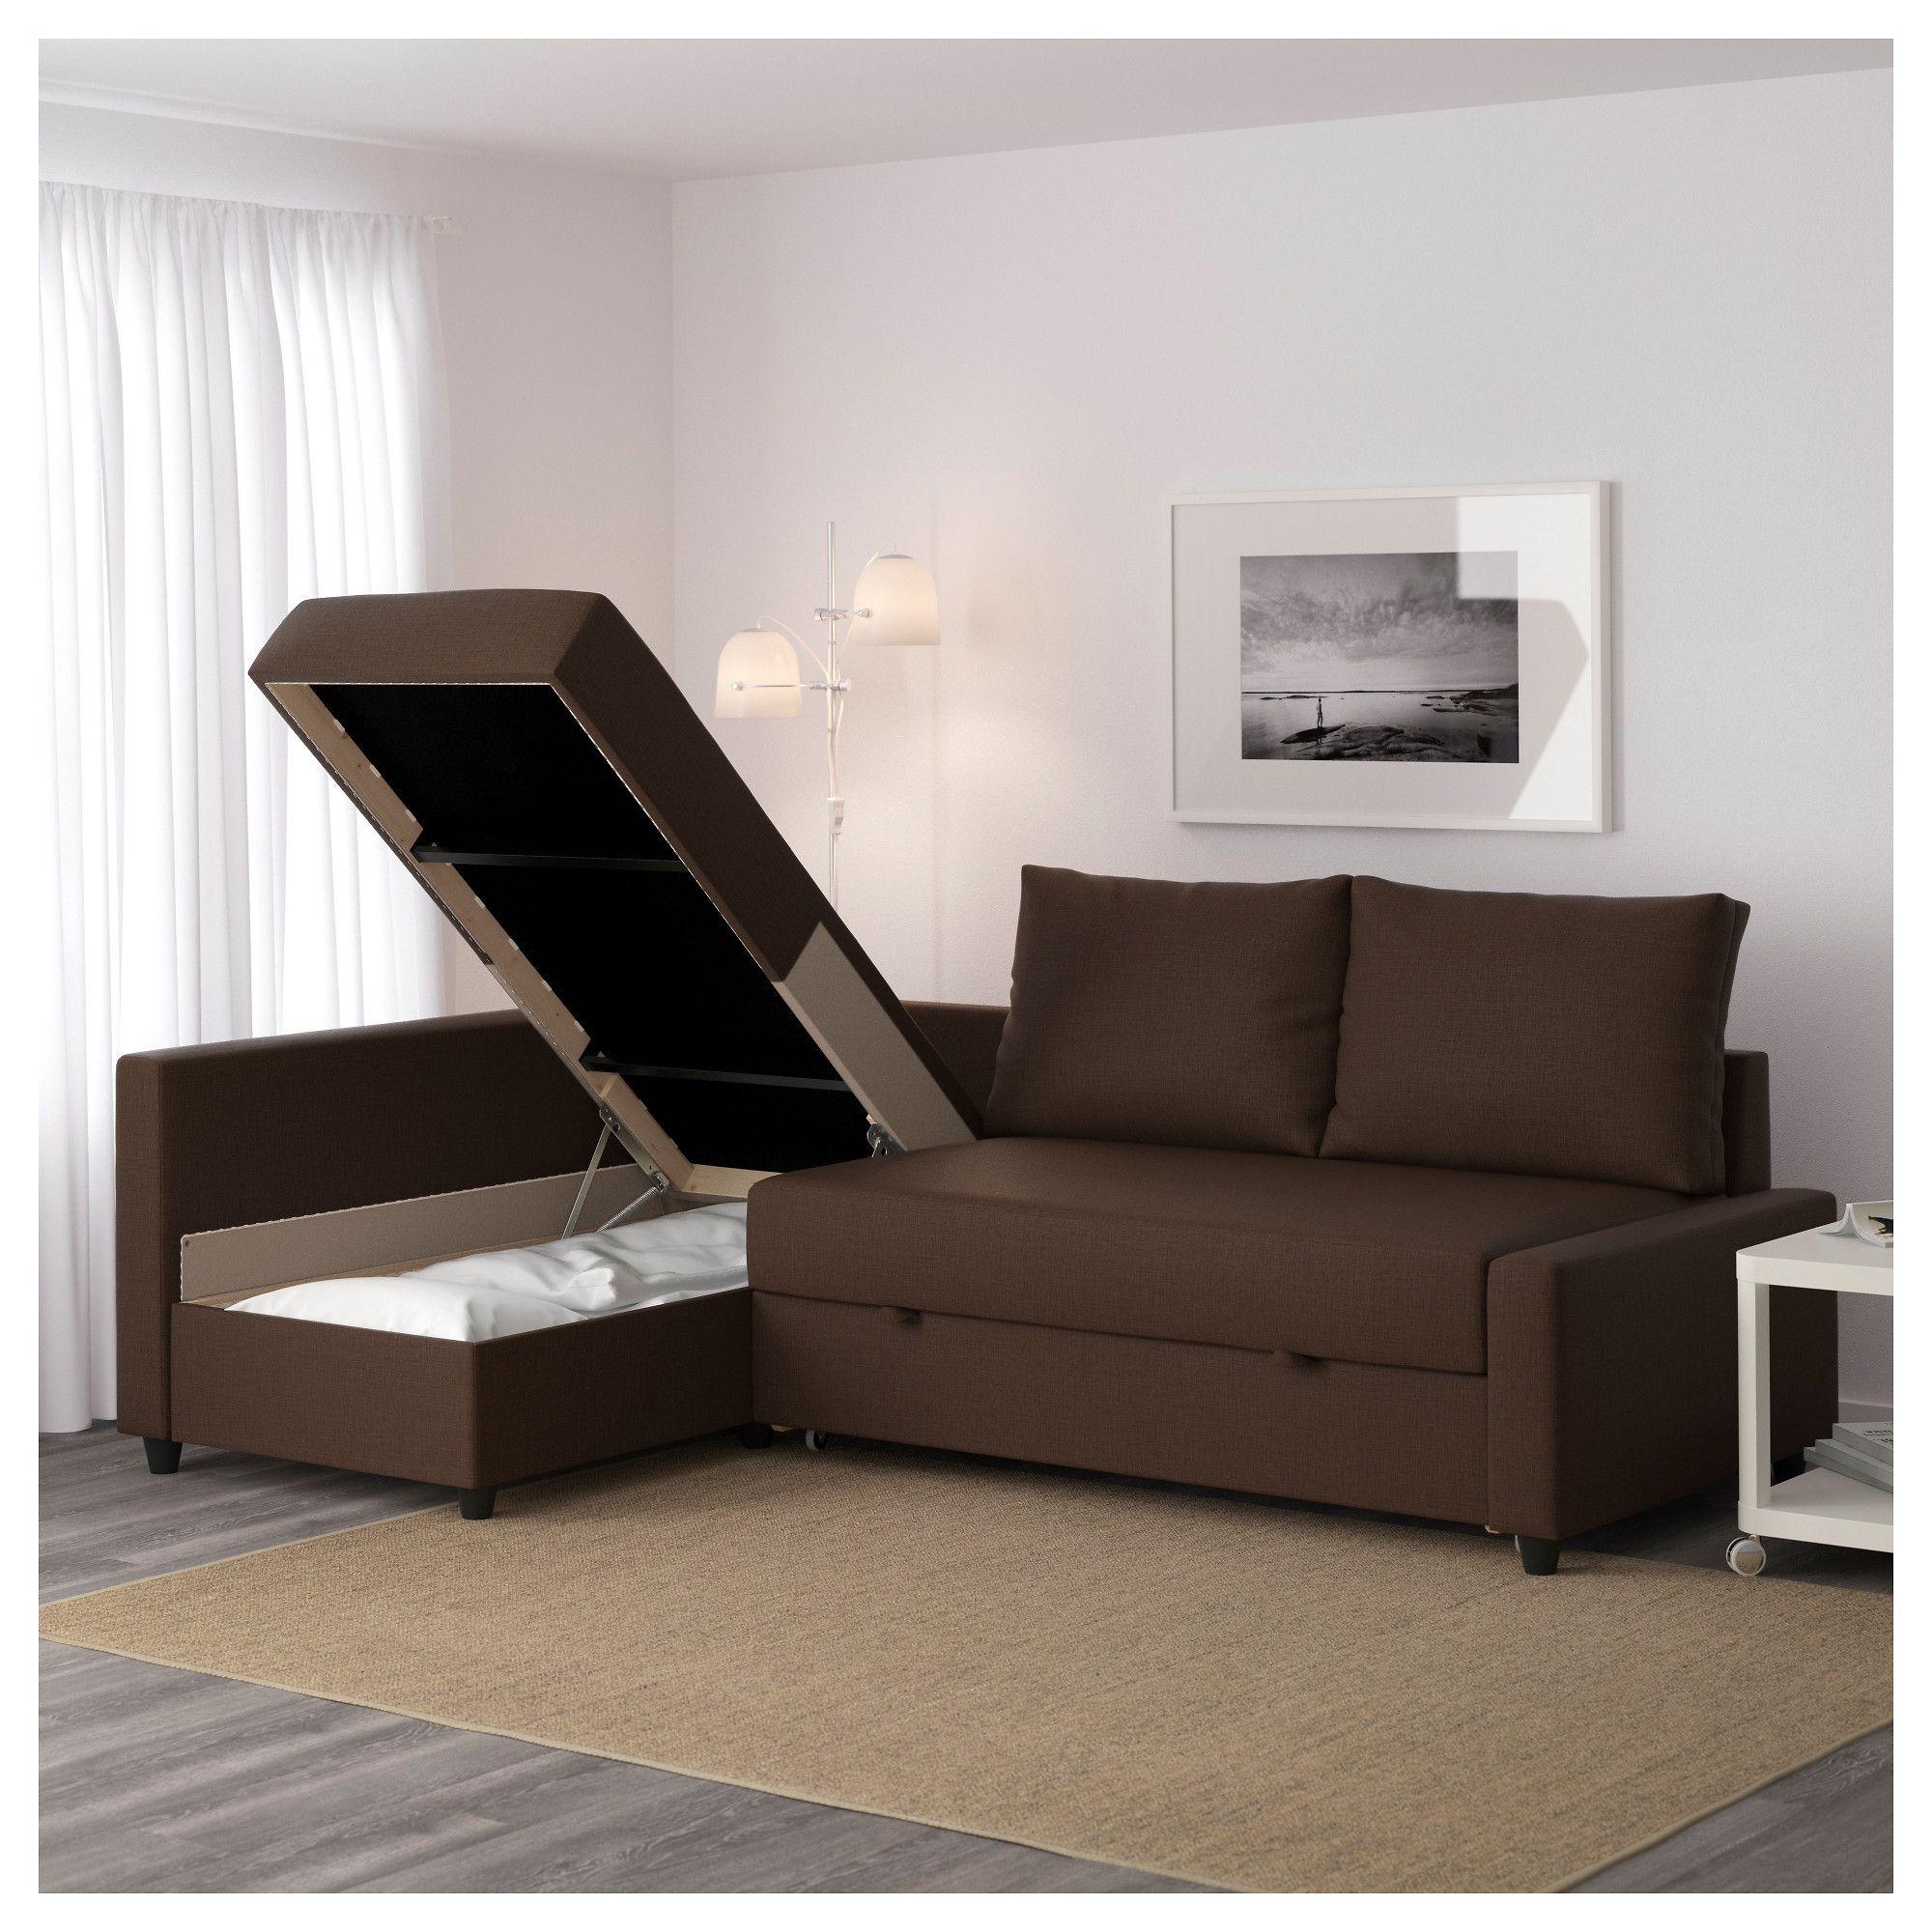 chaise loveseats ds collections with sofa couch sofas couches futons